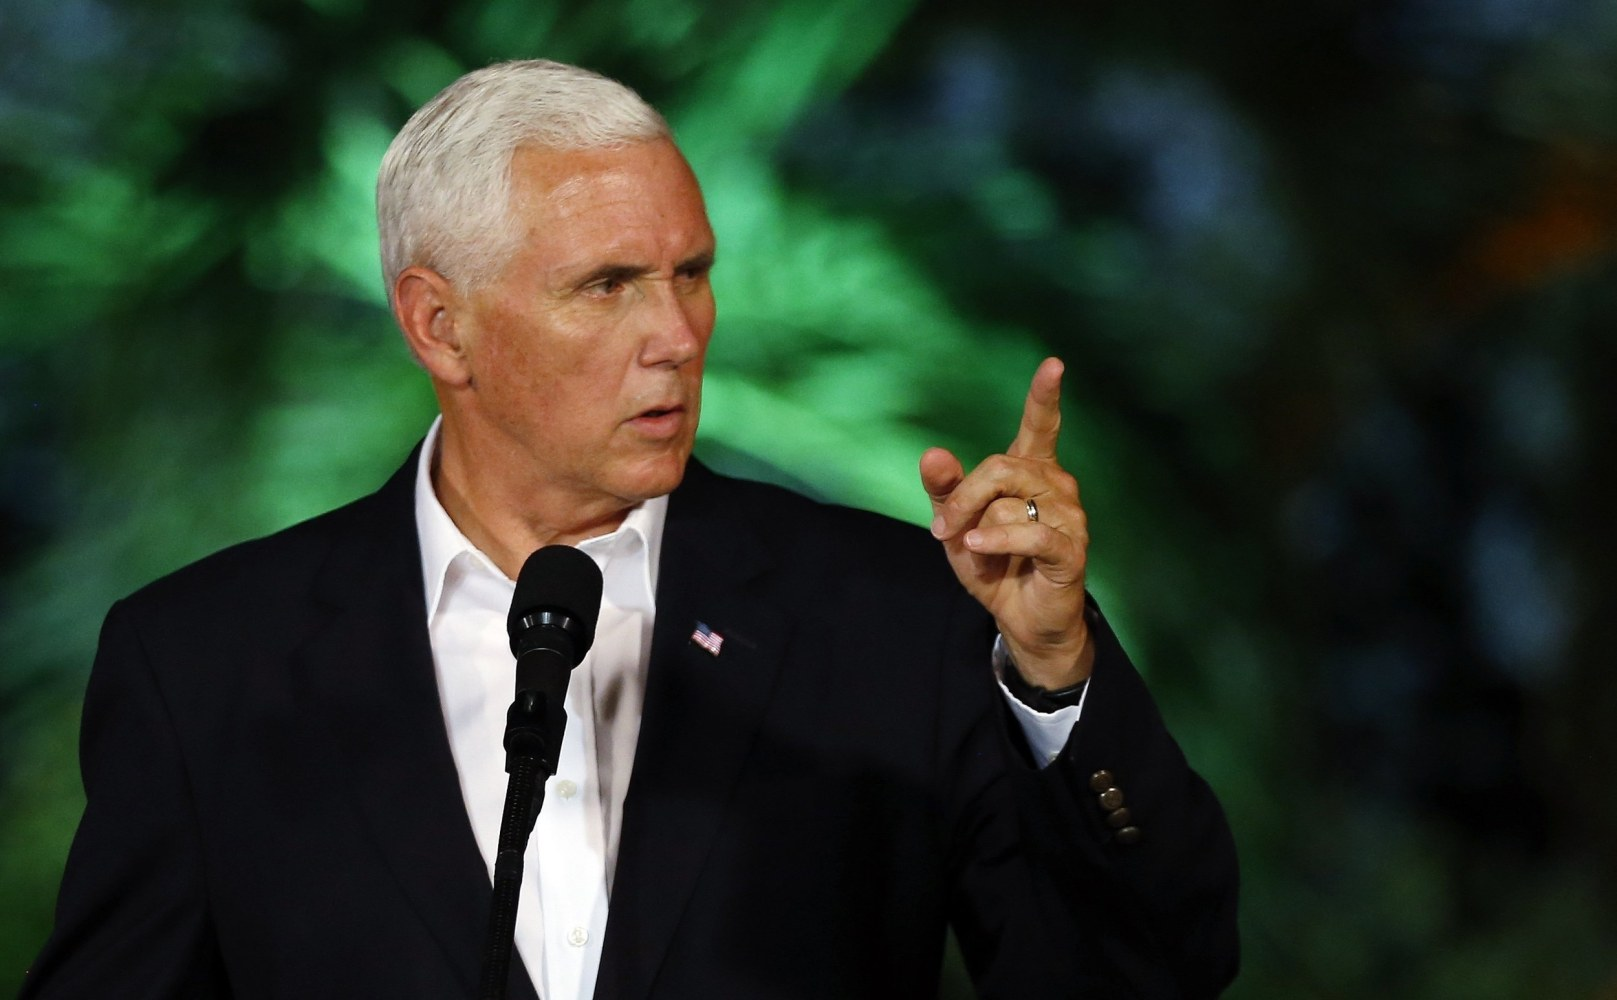 Soldiers on Pence Detail Reassigned for Bringing Women to Hotel